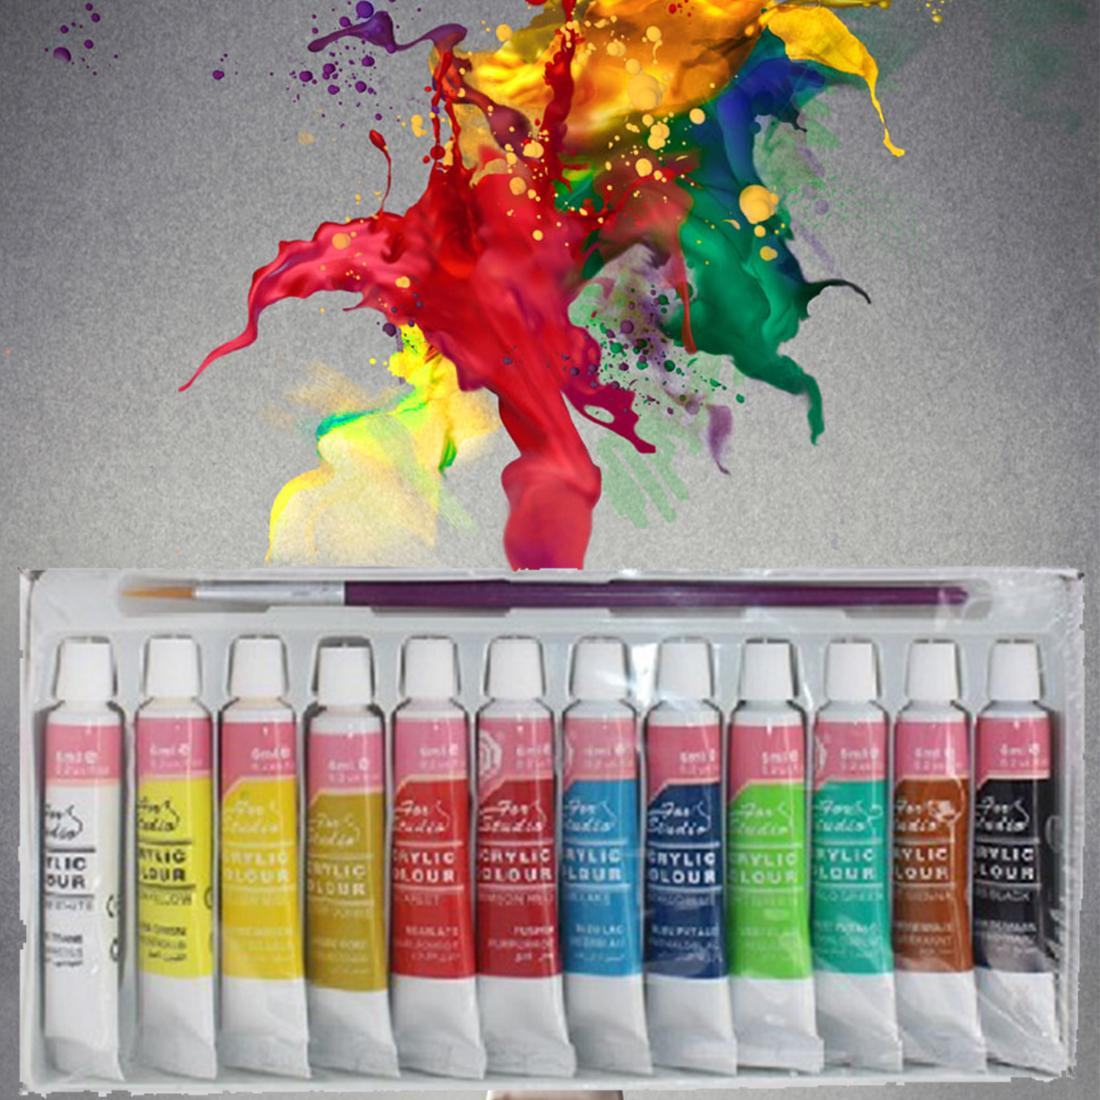 12 Colors Professional Acrylic Paints Set Hand Painted Wall Painting Textile - Intl By Ancient Shop